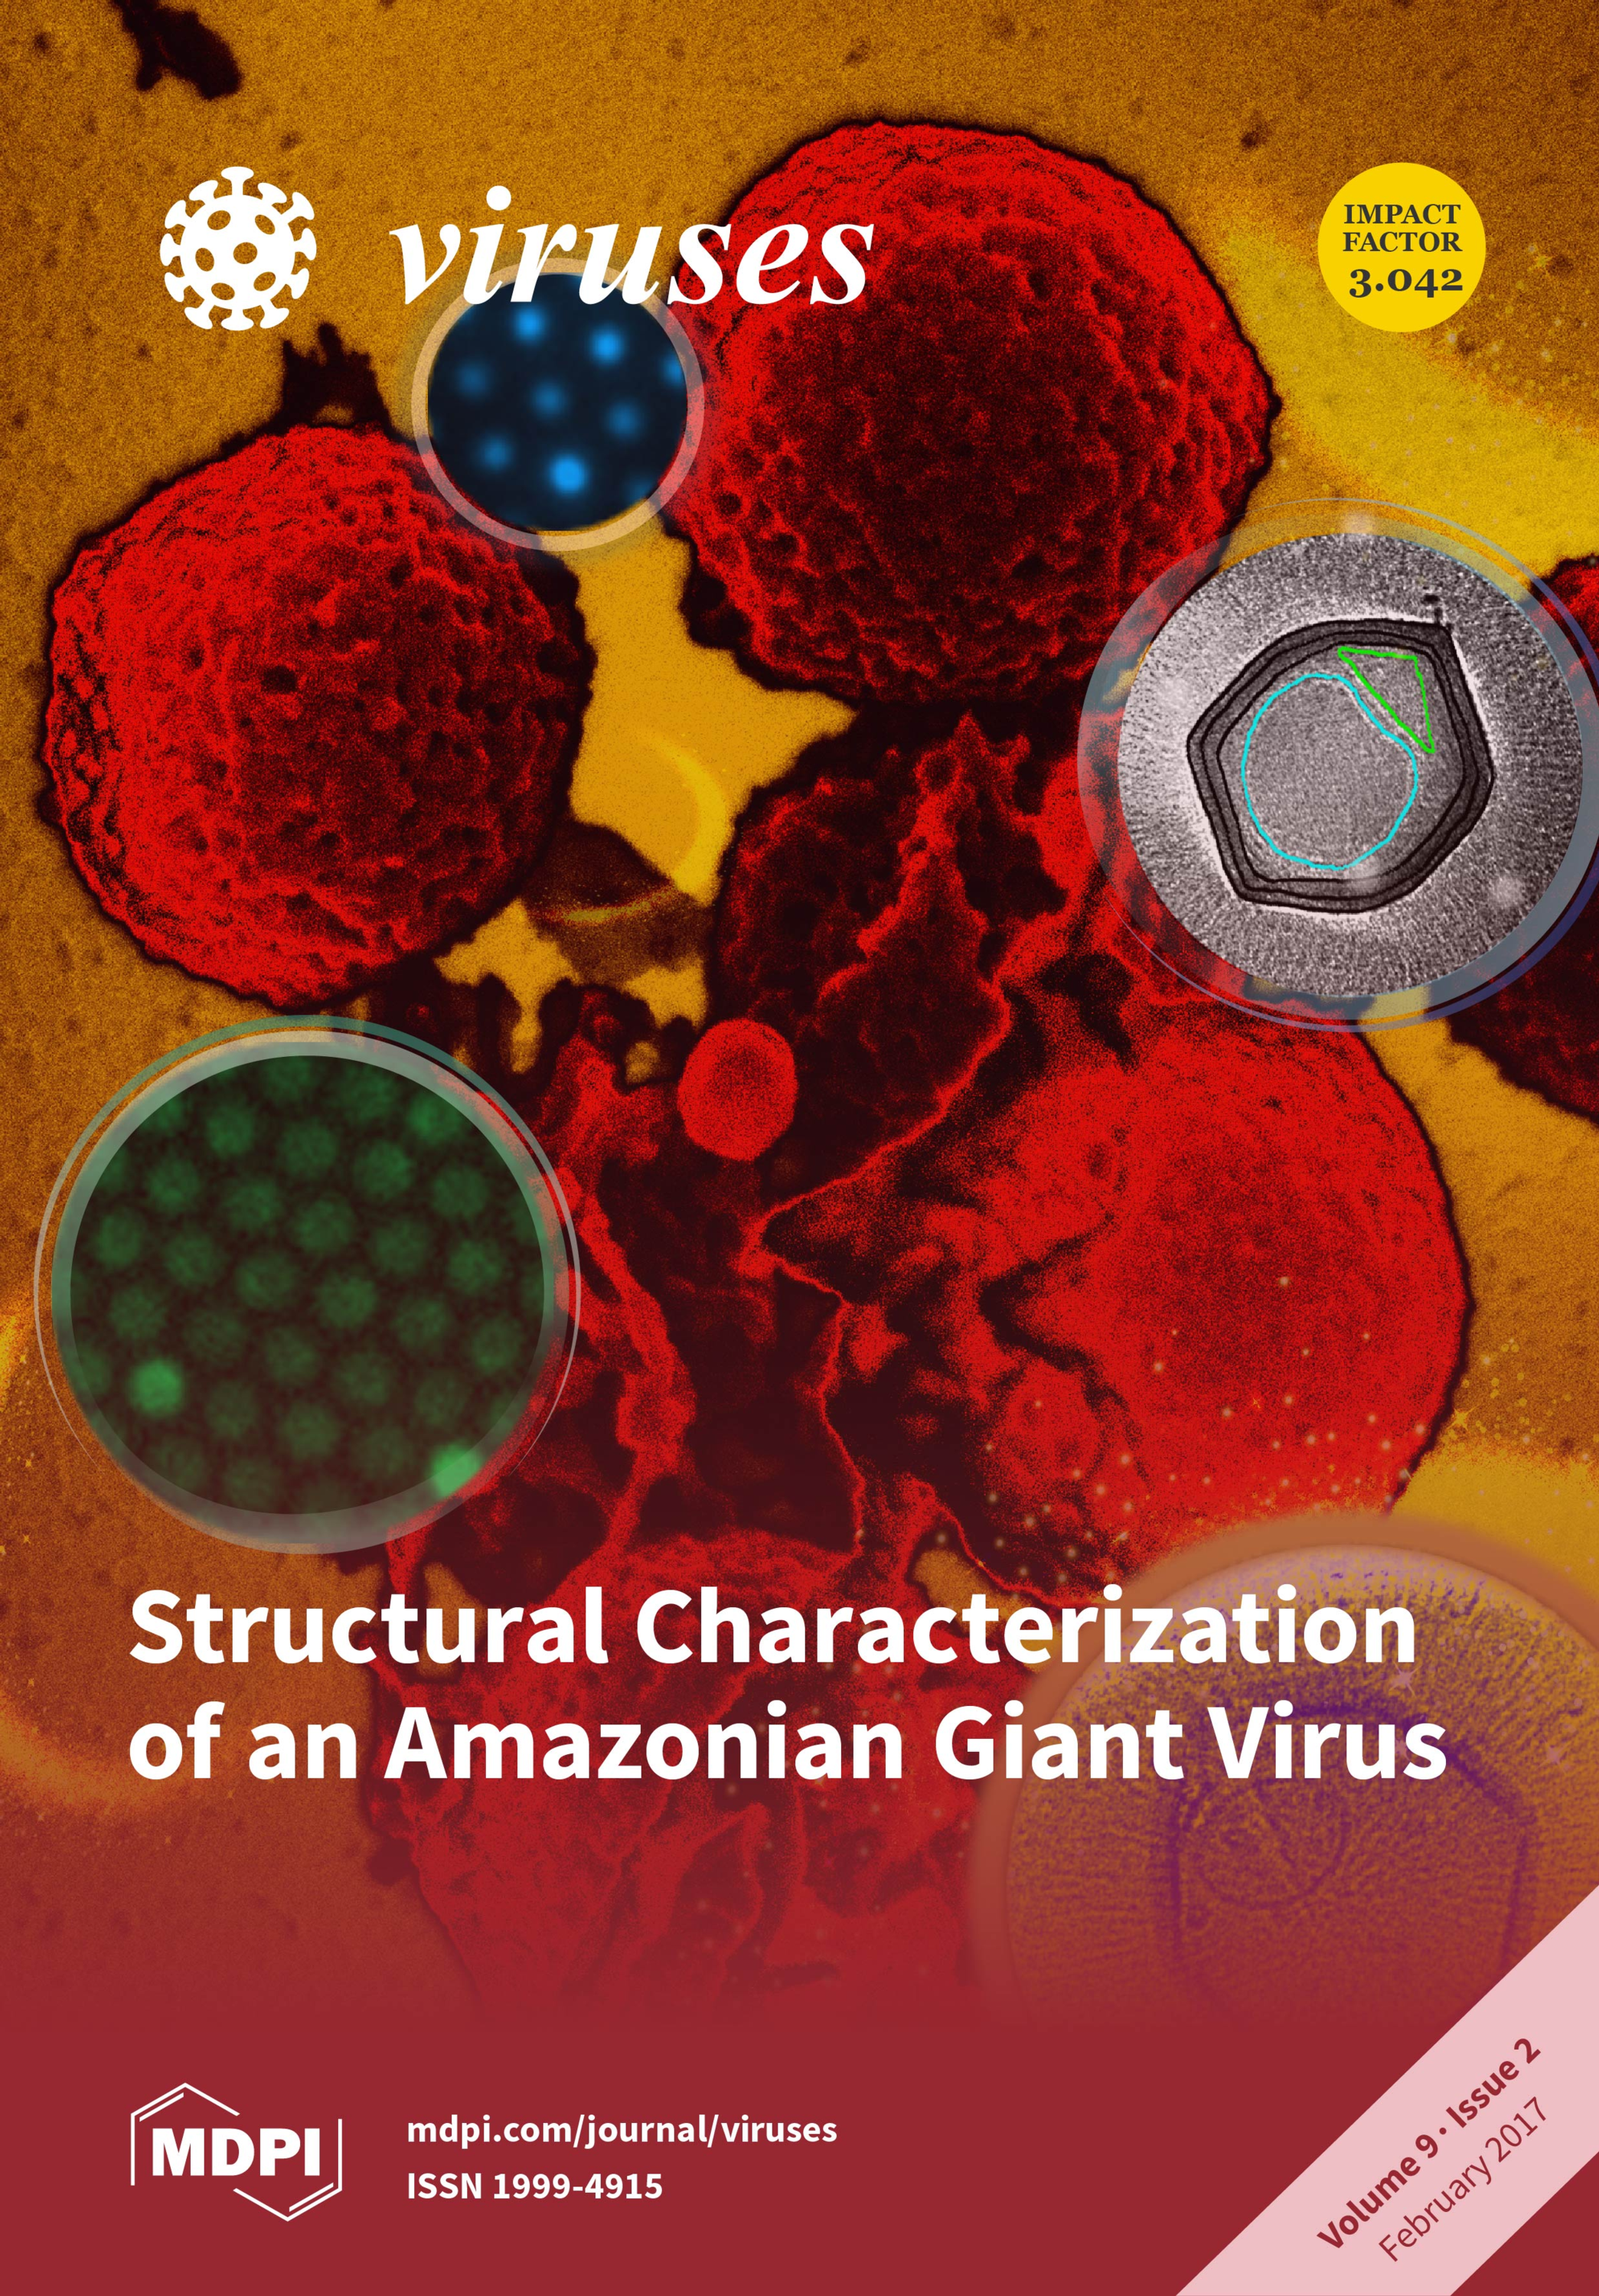 Jason Schrad's image and publication featured on the cover of Viruses.